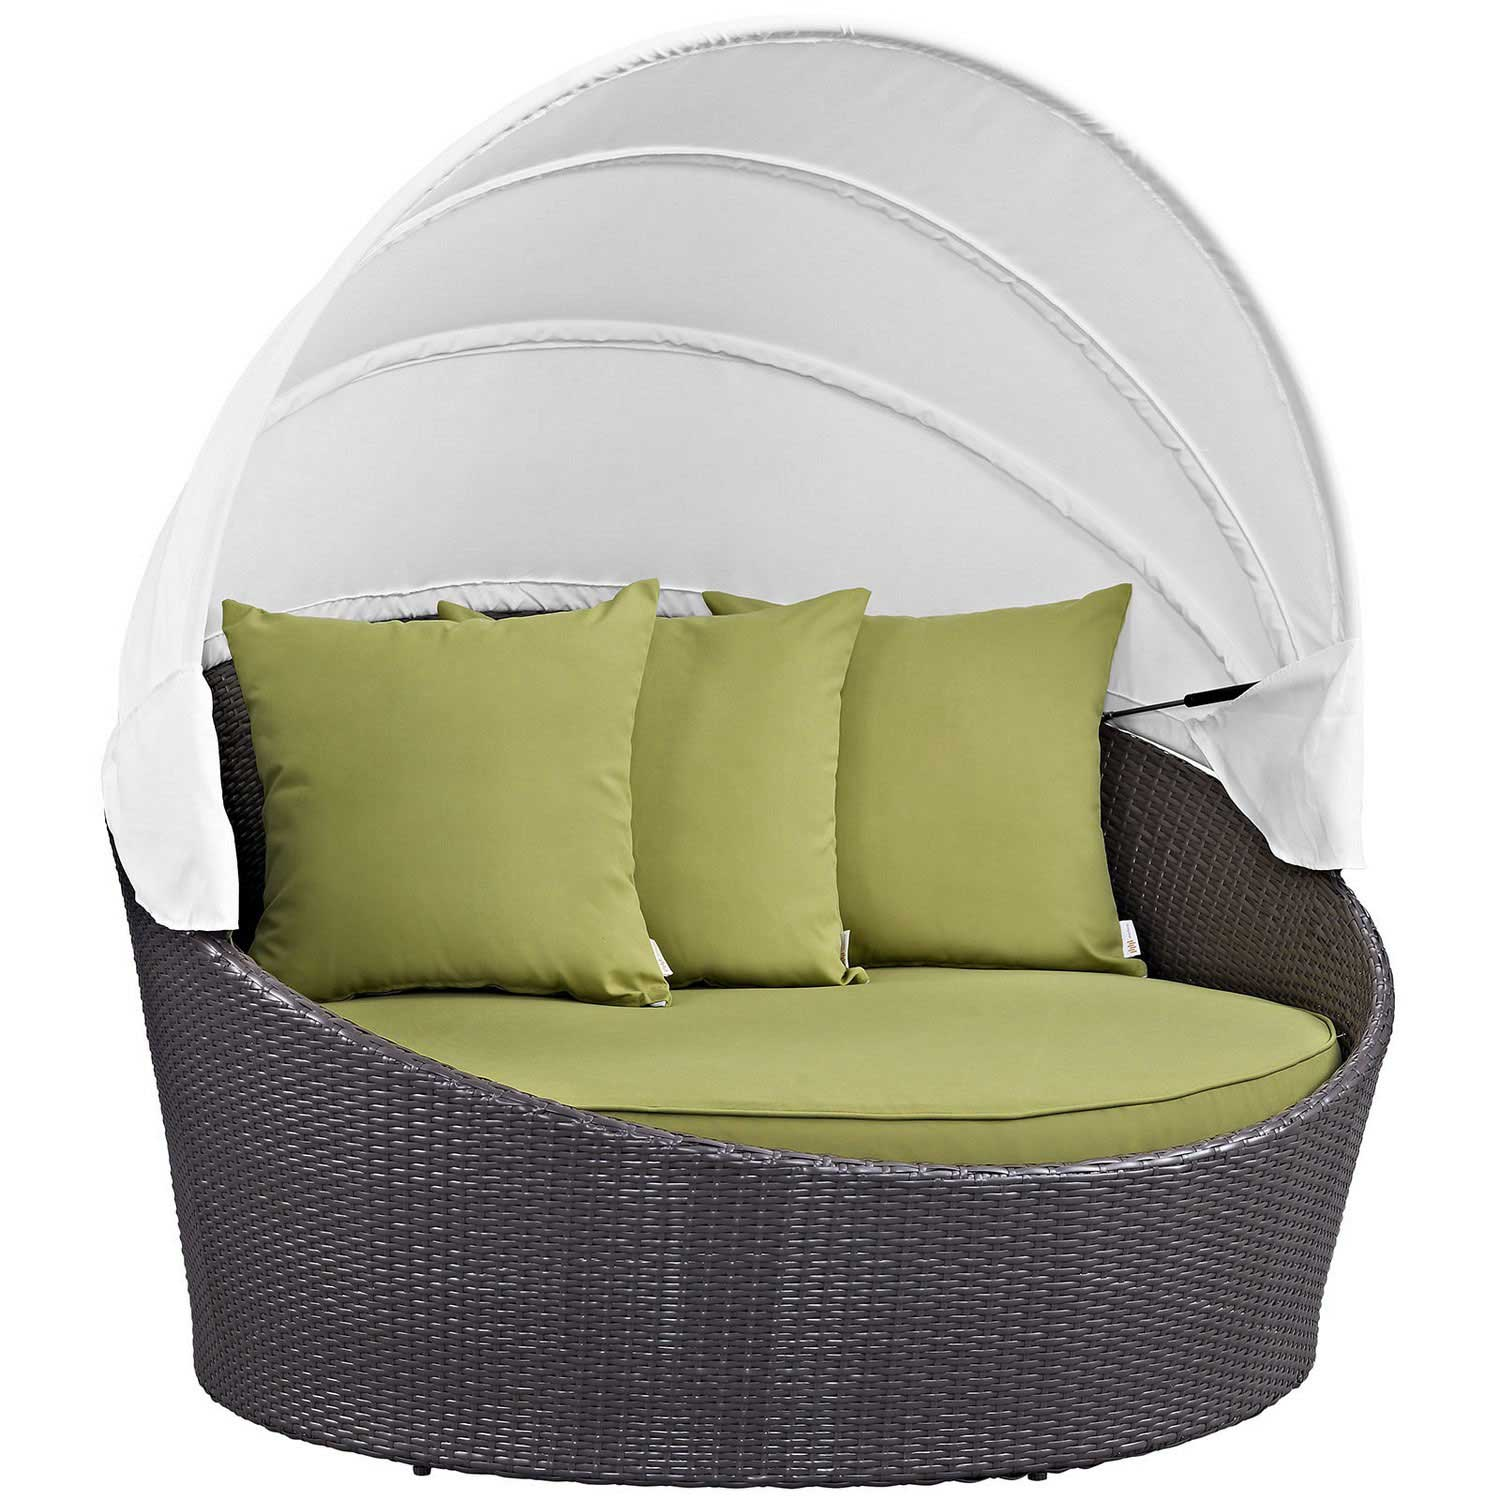 Modway Convene Canopy Outdoor Patio Daybed - Espresso Peridot